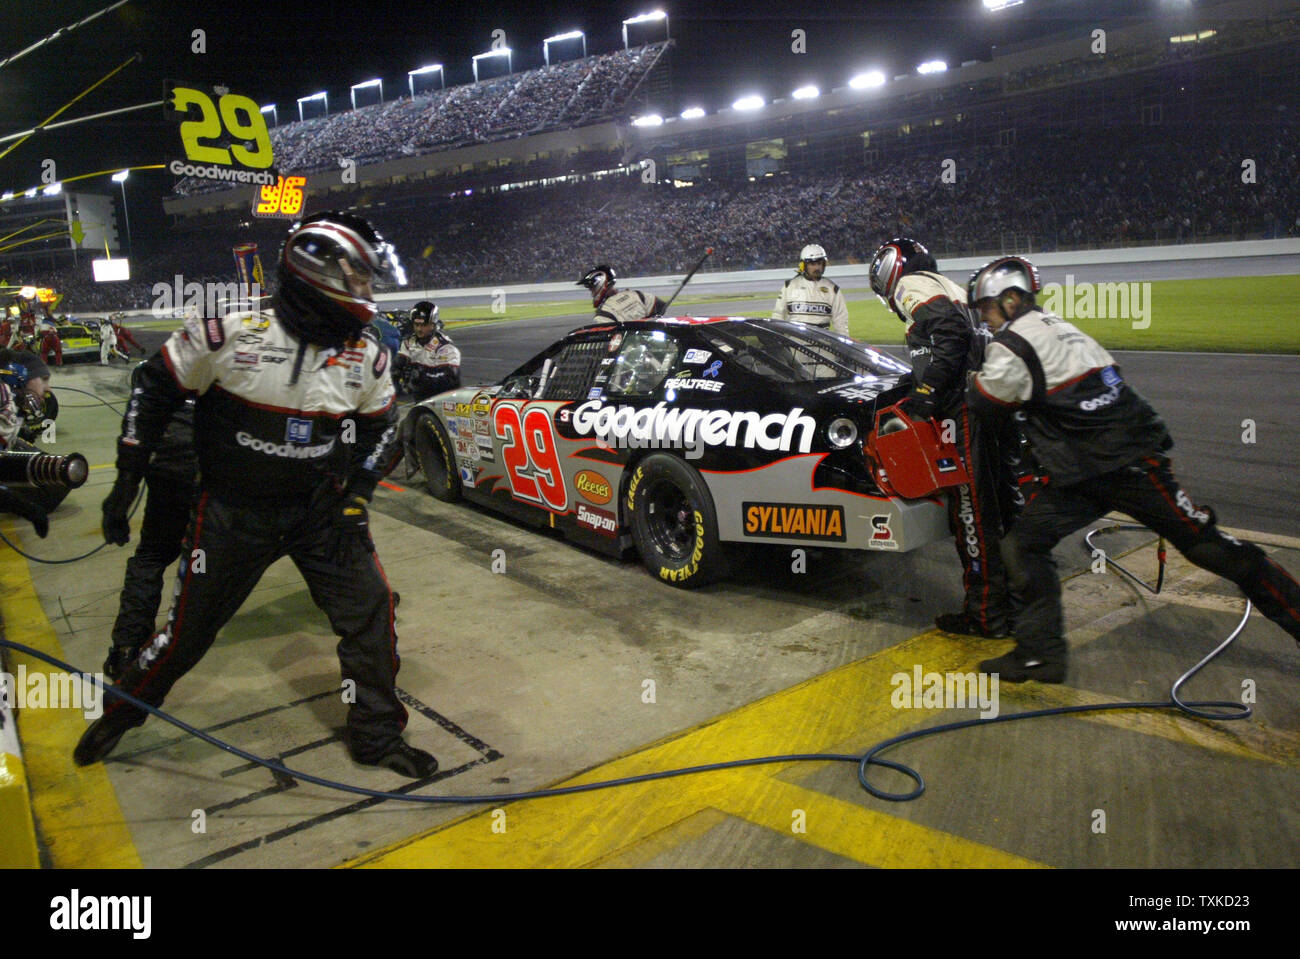 Goodwrench Stock Photos & Goodwrench Stock Images - Alamy